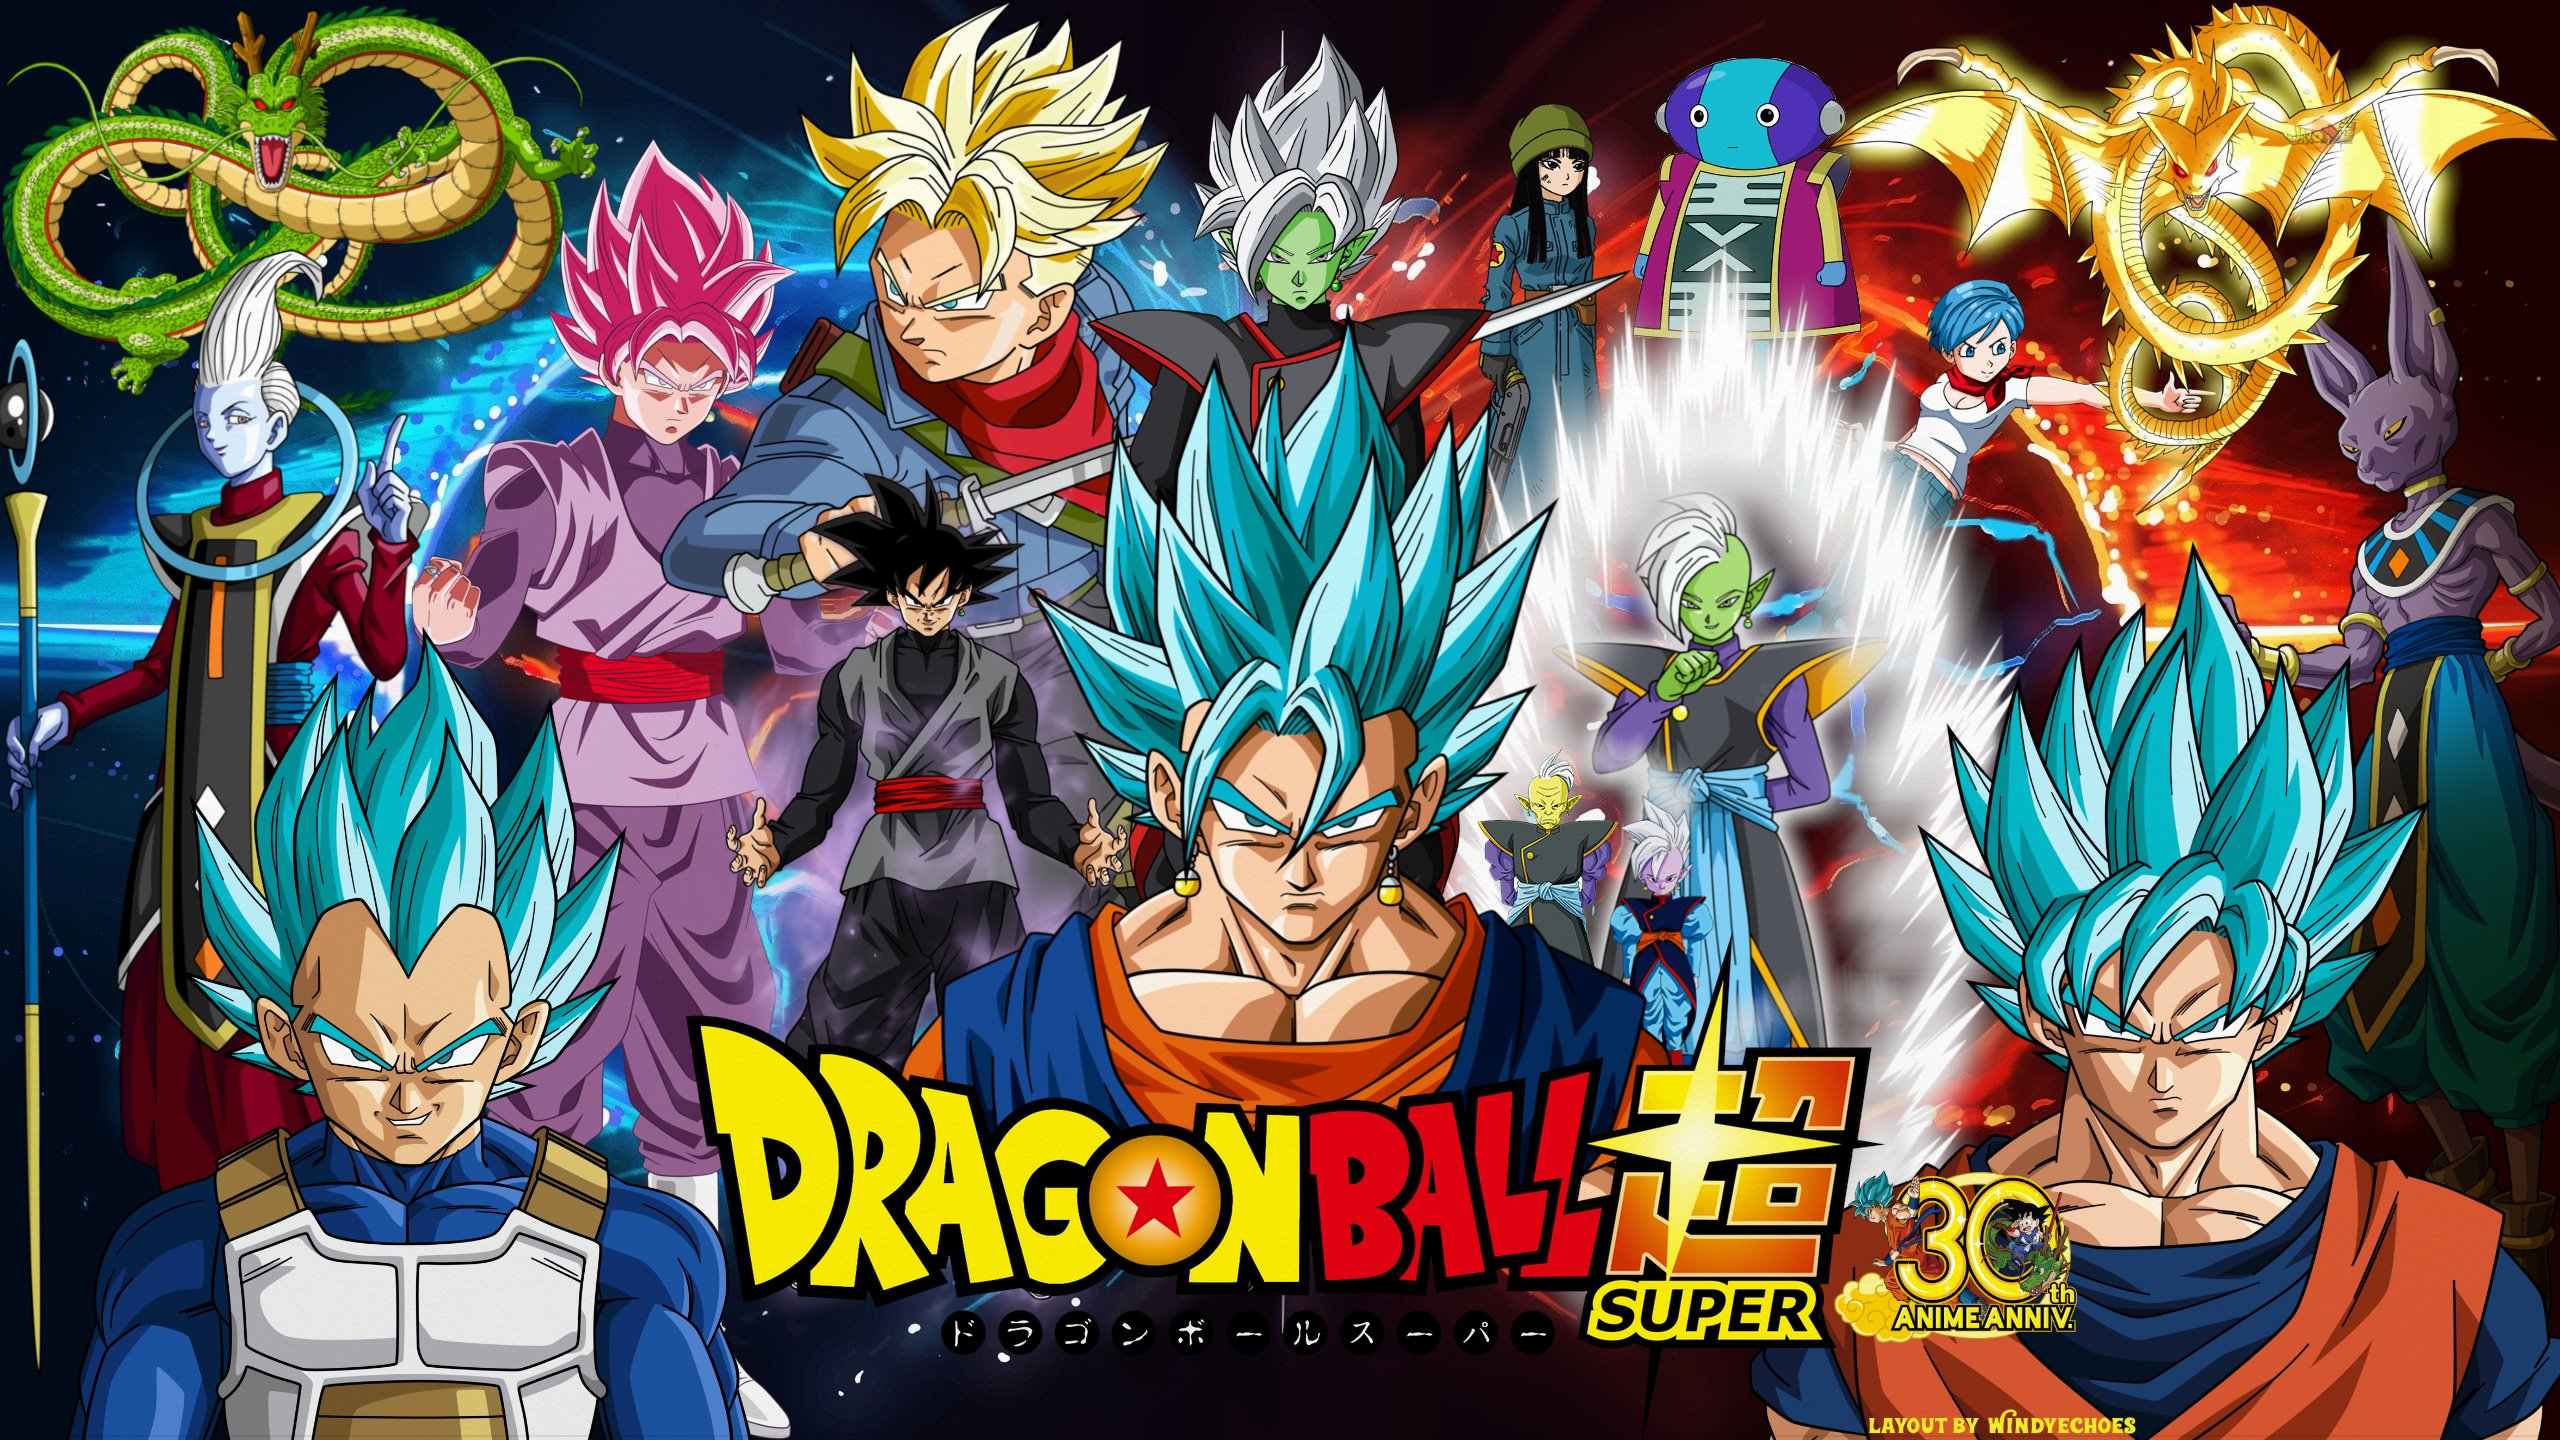 Dragon Ball Super Fondo De Pantalla Hd Fondo De Escritorio